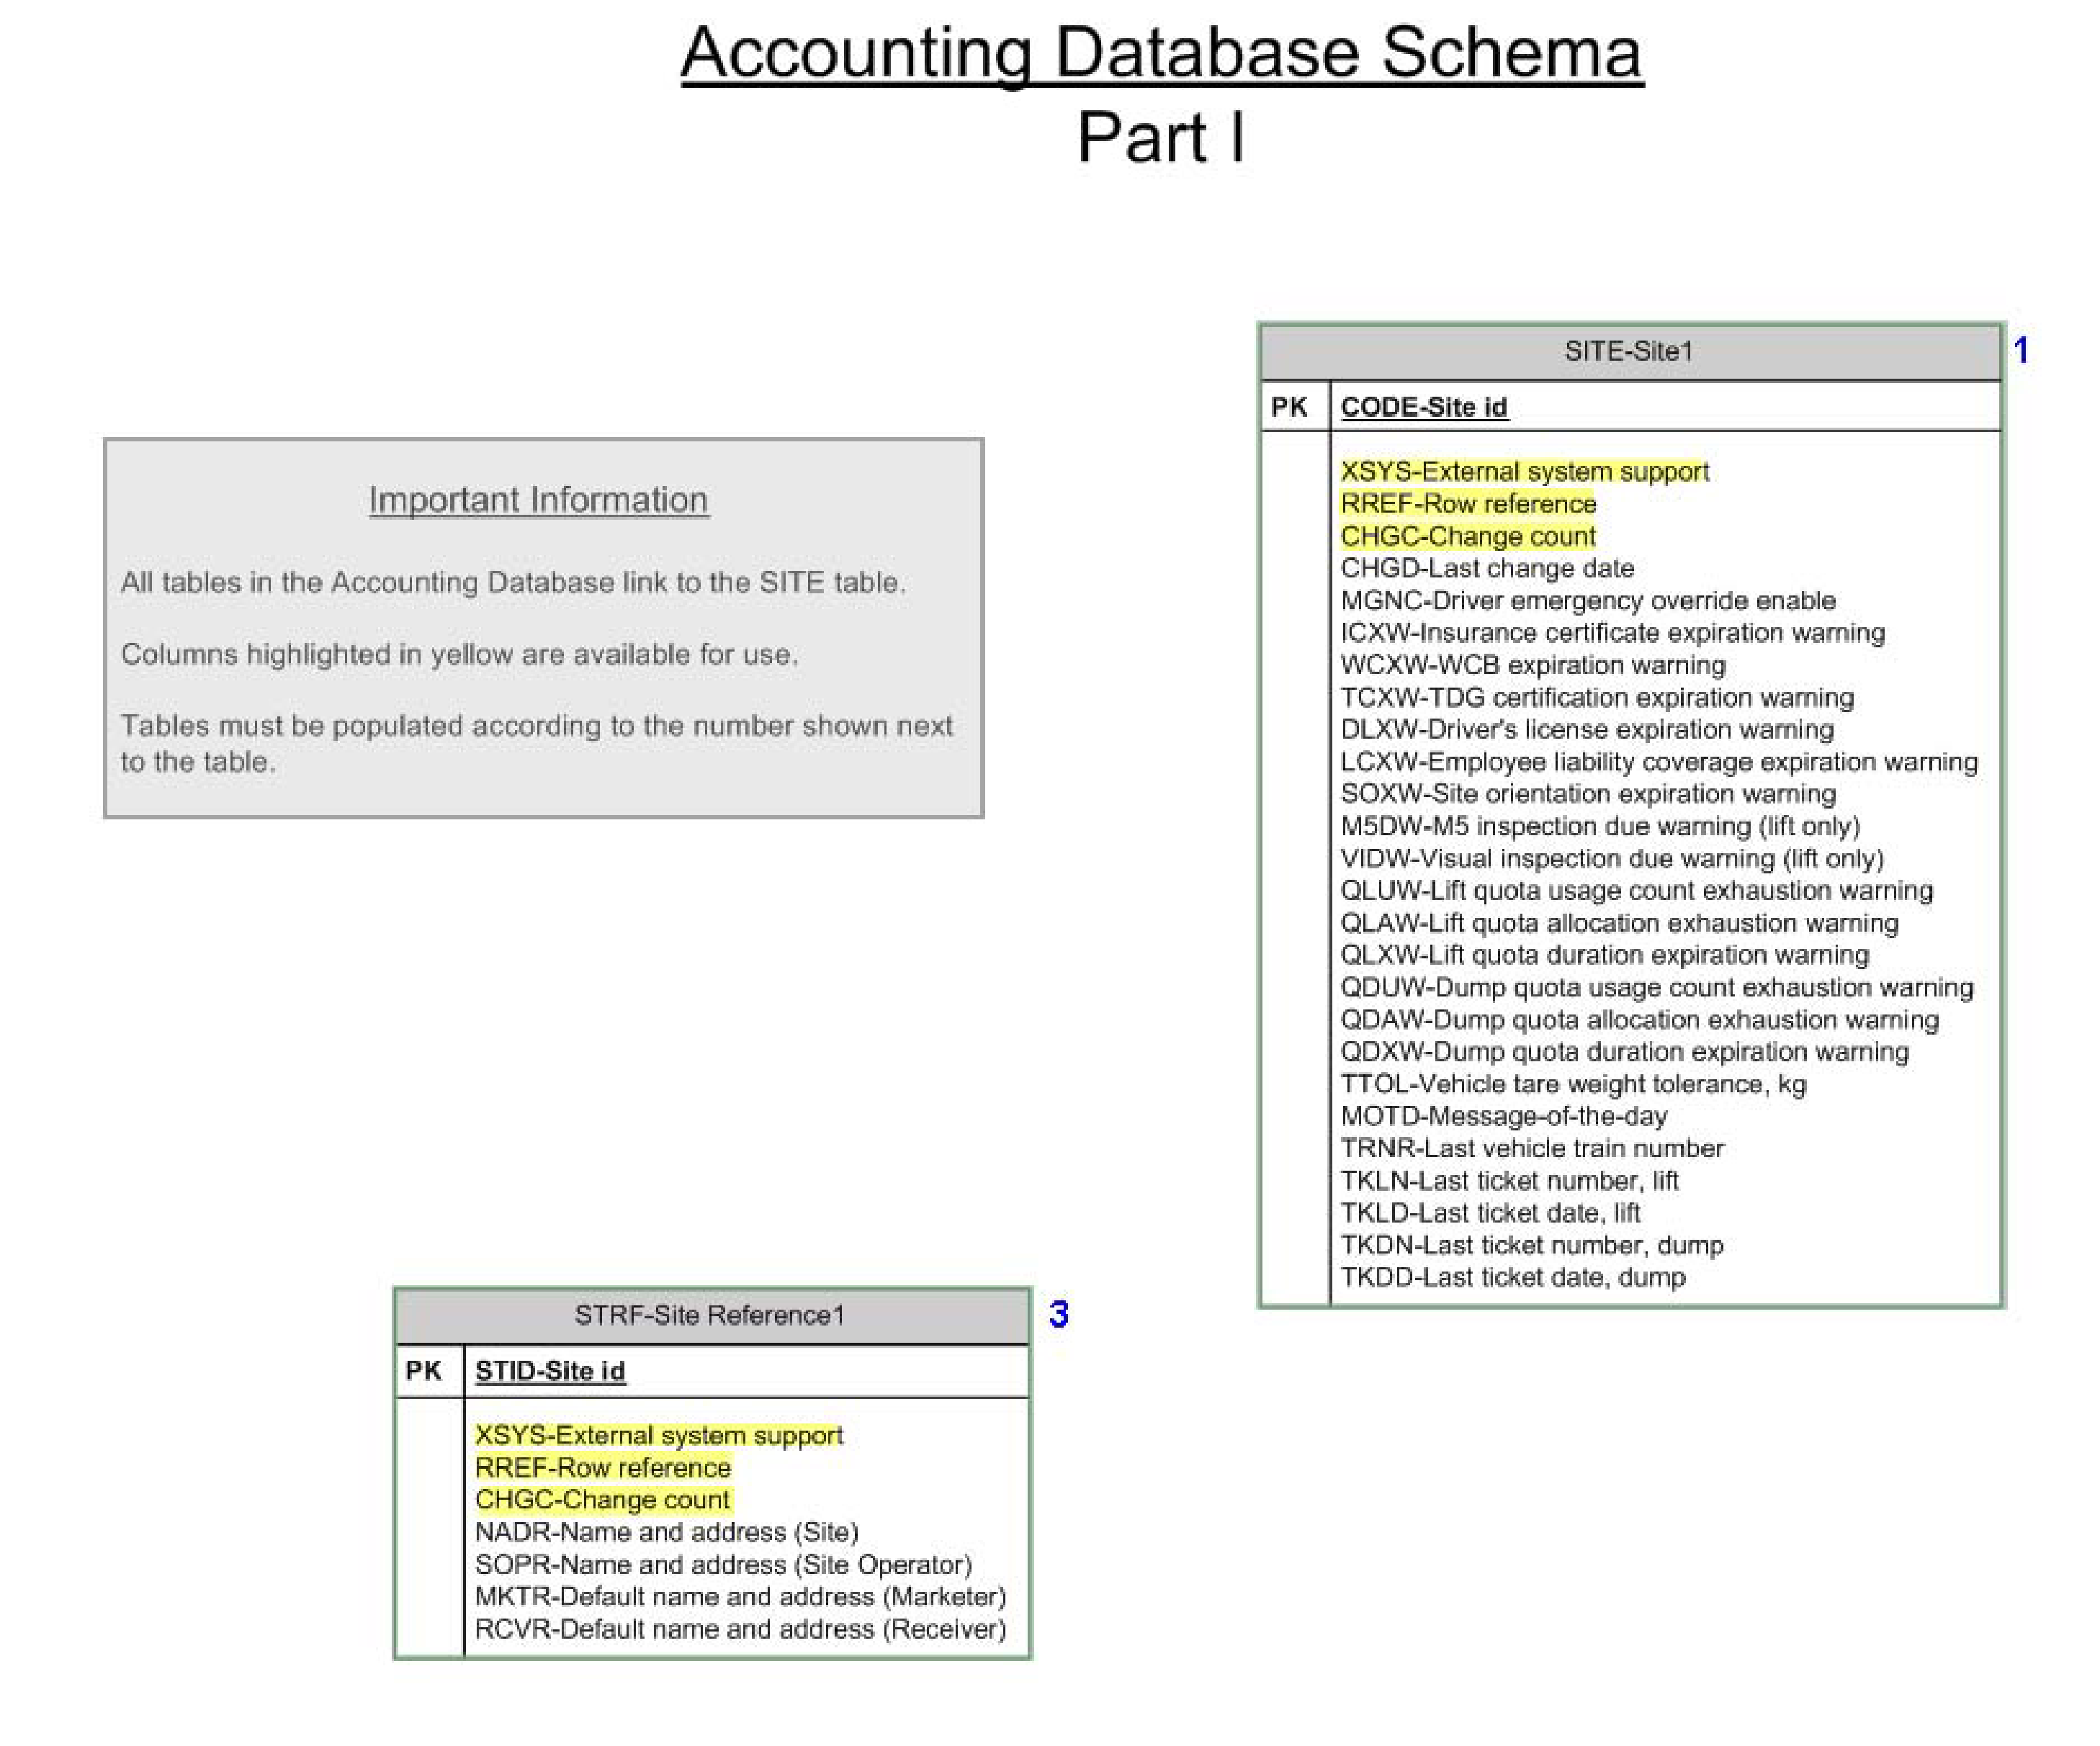 Accounting Database Schema main image